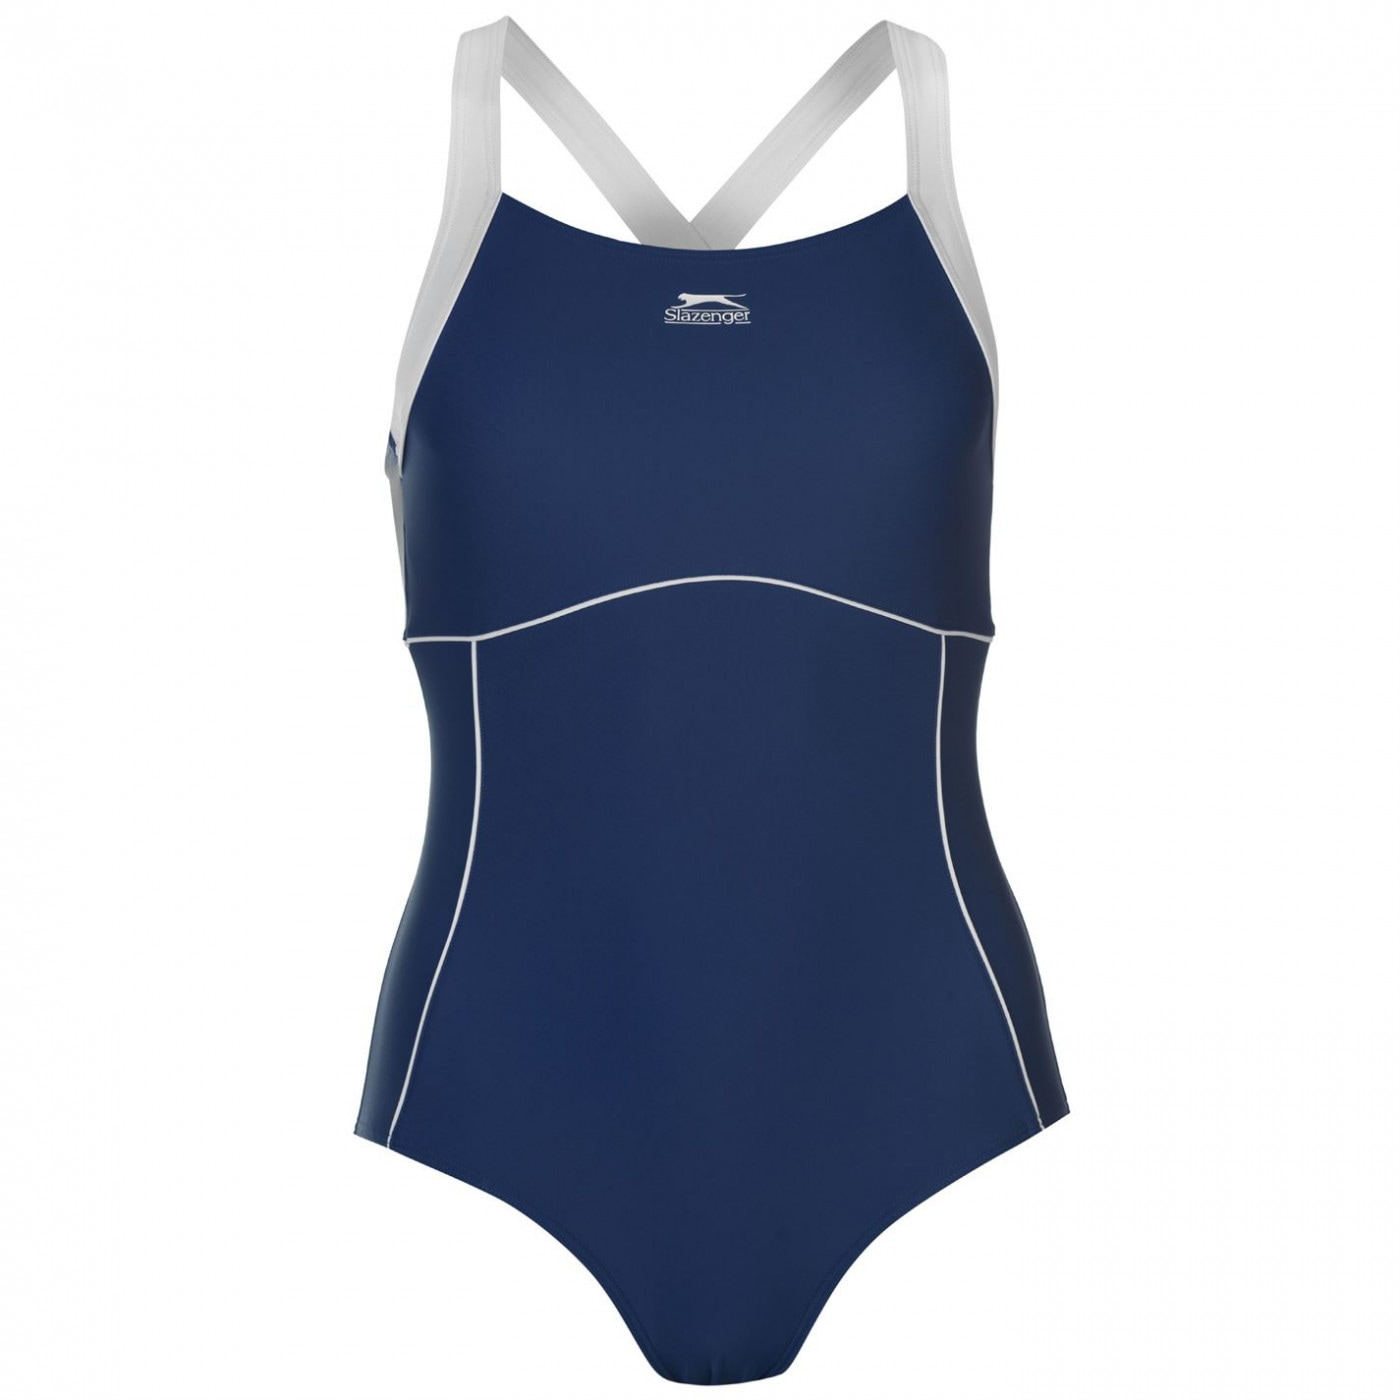 Women's swimsuit Slazenger X Back